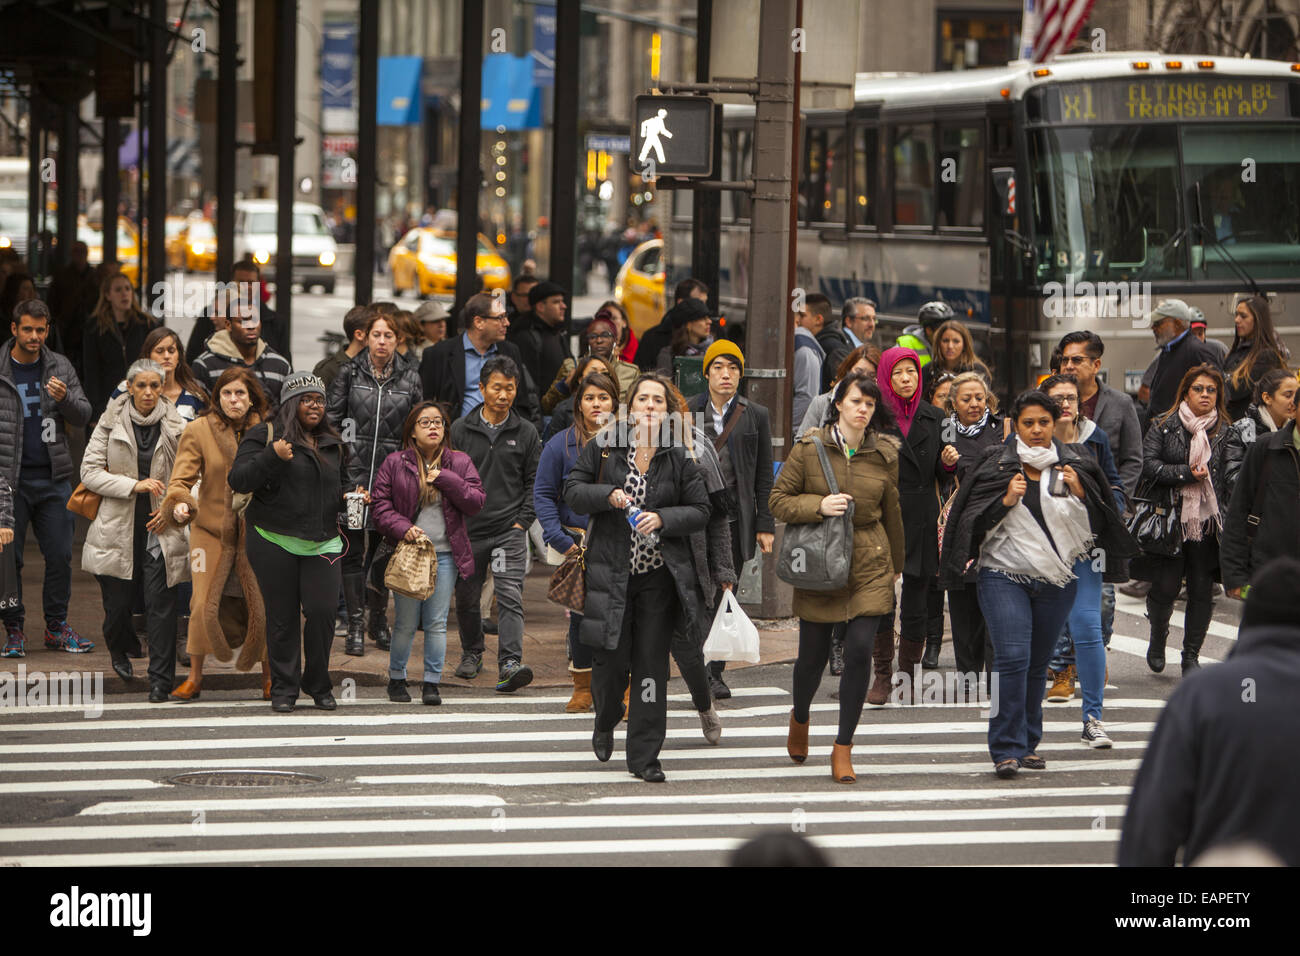 5th Ave. at 42nd Street is one of the most constantly crowded corners in New York City. Stock Photo